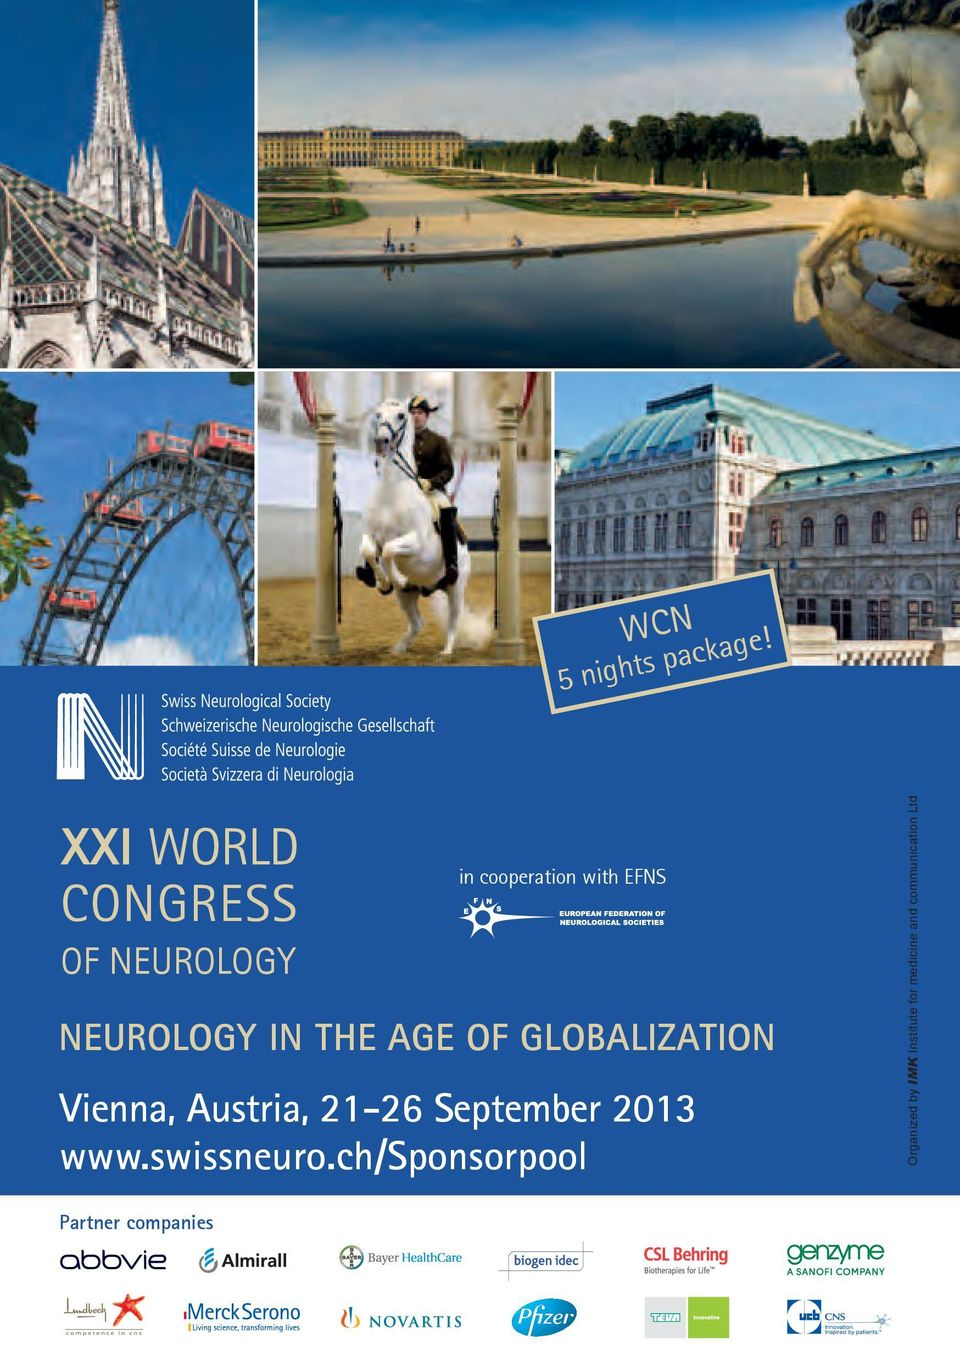 NEUROLOGY IN THE AGE OF GLOBALIZATION Vienna, Austria, 21-26